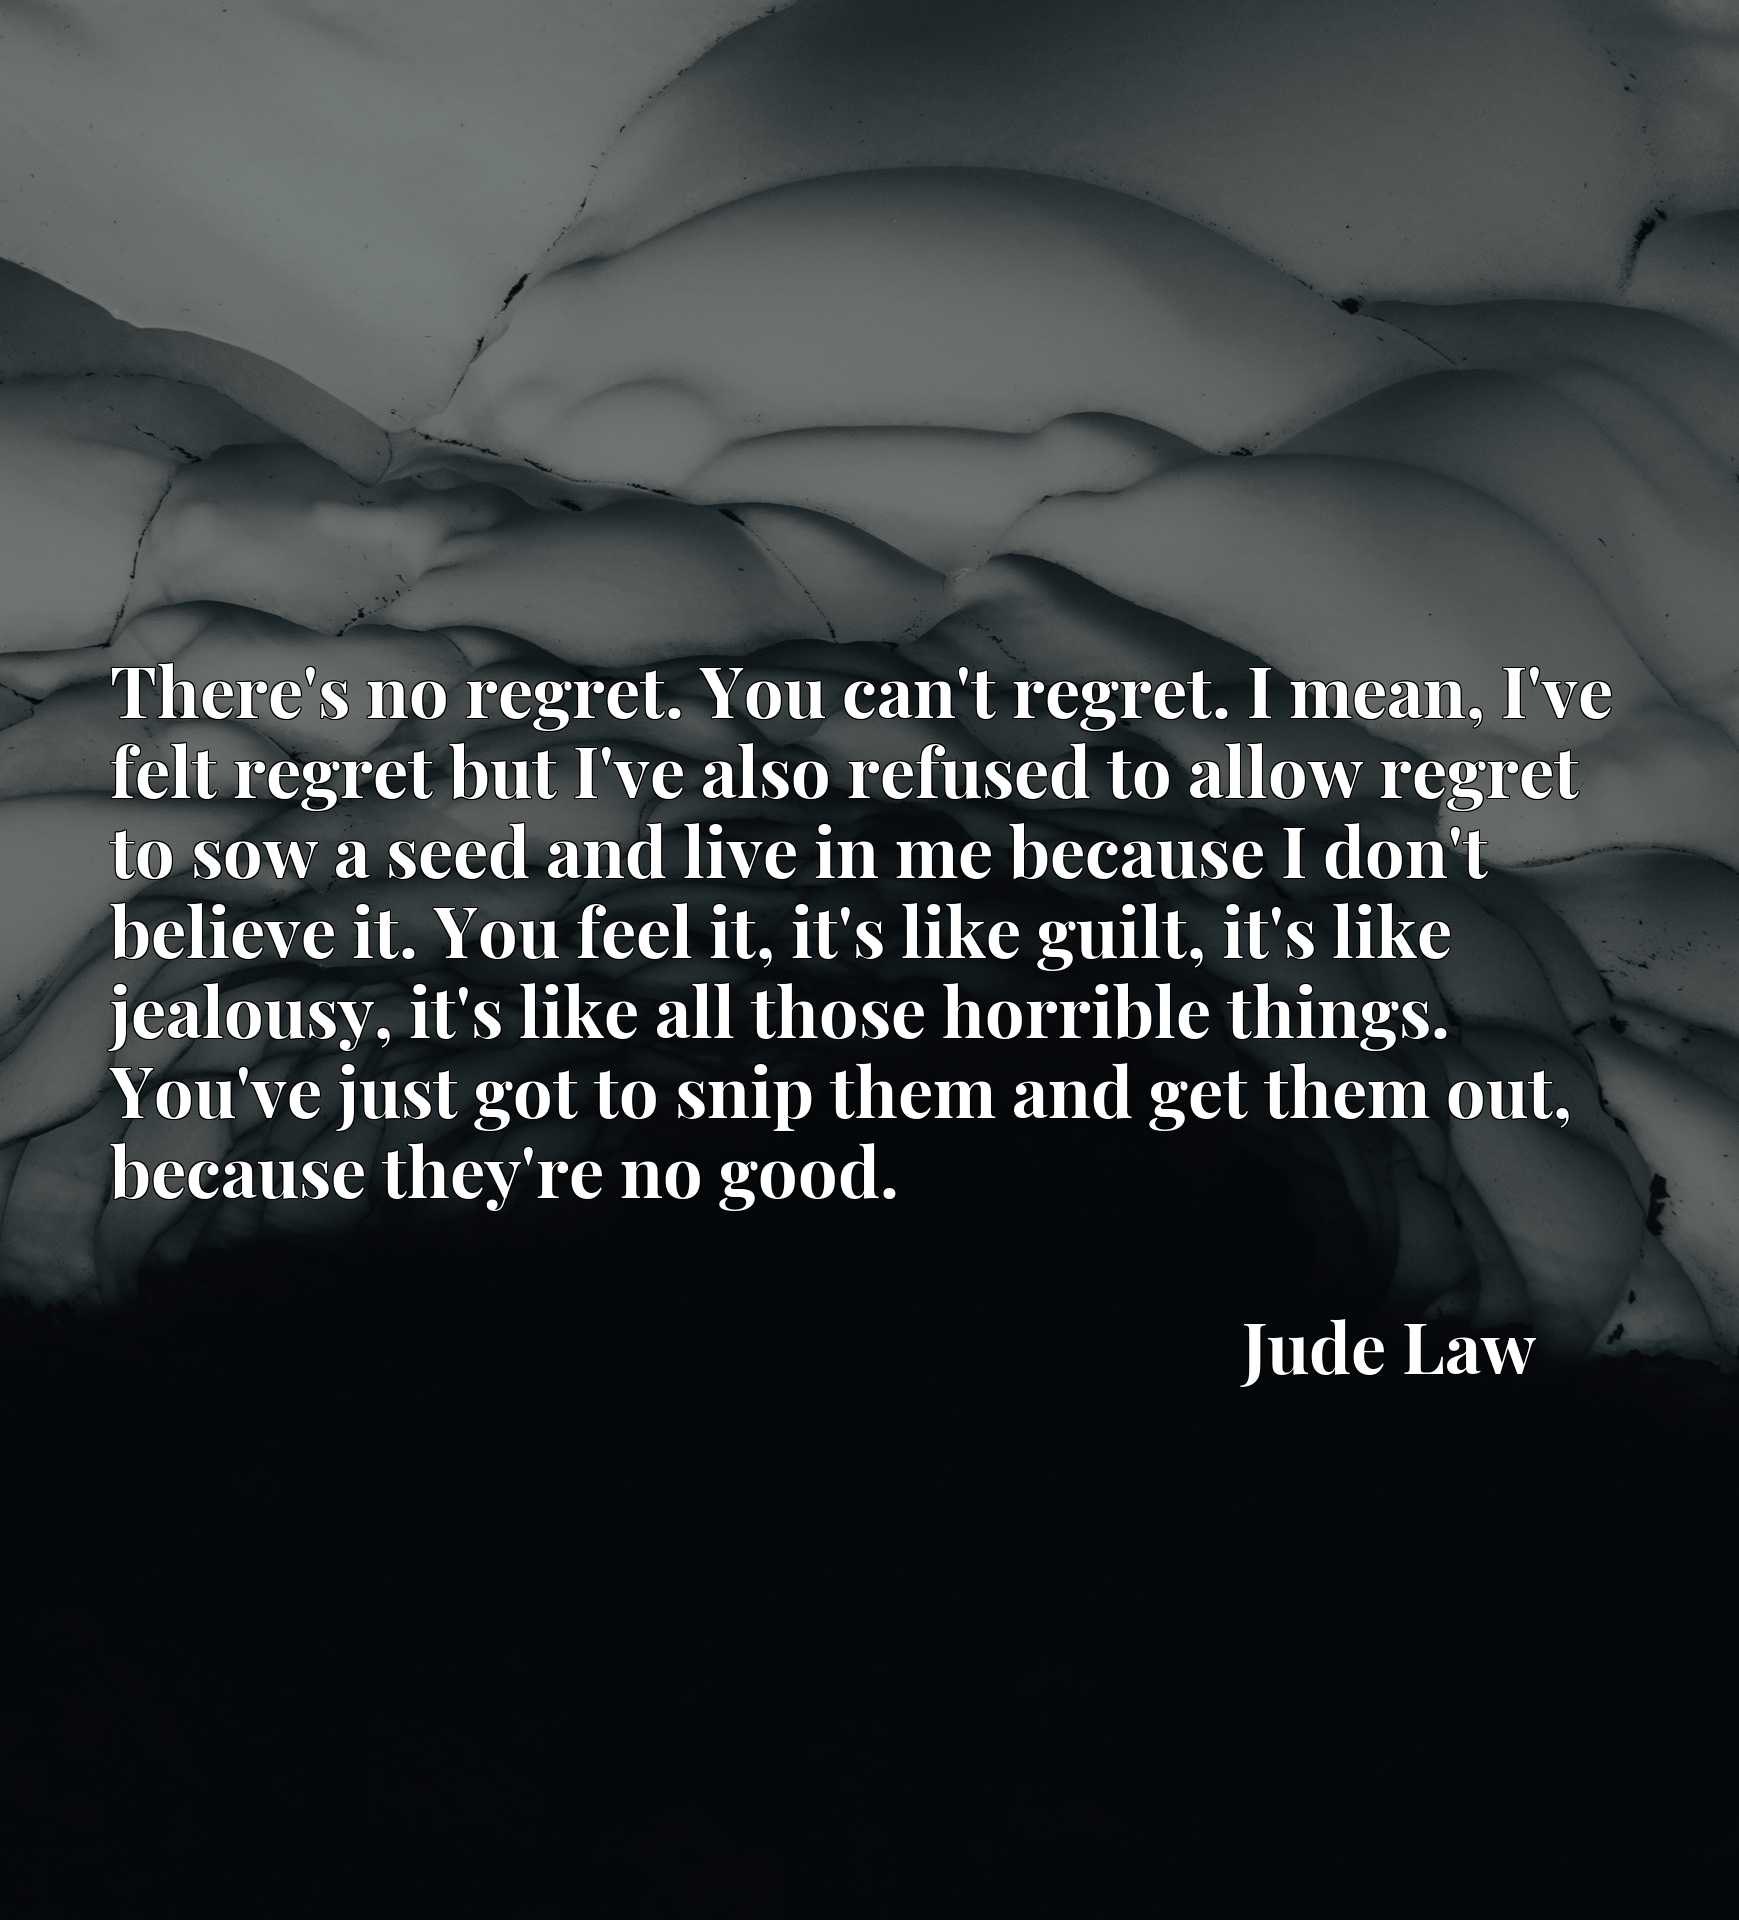 There's no regret. You can't regret. I mean, I've felt regret but I've also refused to allow regret to sow a seed and live in me because I don't believe it. You feel it, it's like guilt, it's like jealousy, it's like all those horrible things. You've just got to snip them and get them out, because they're no good.